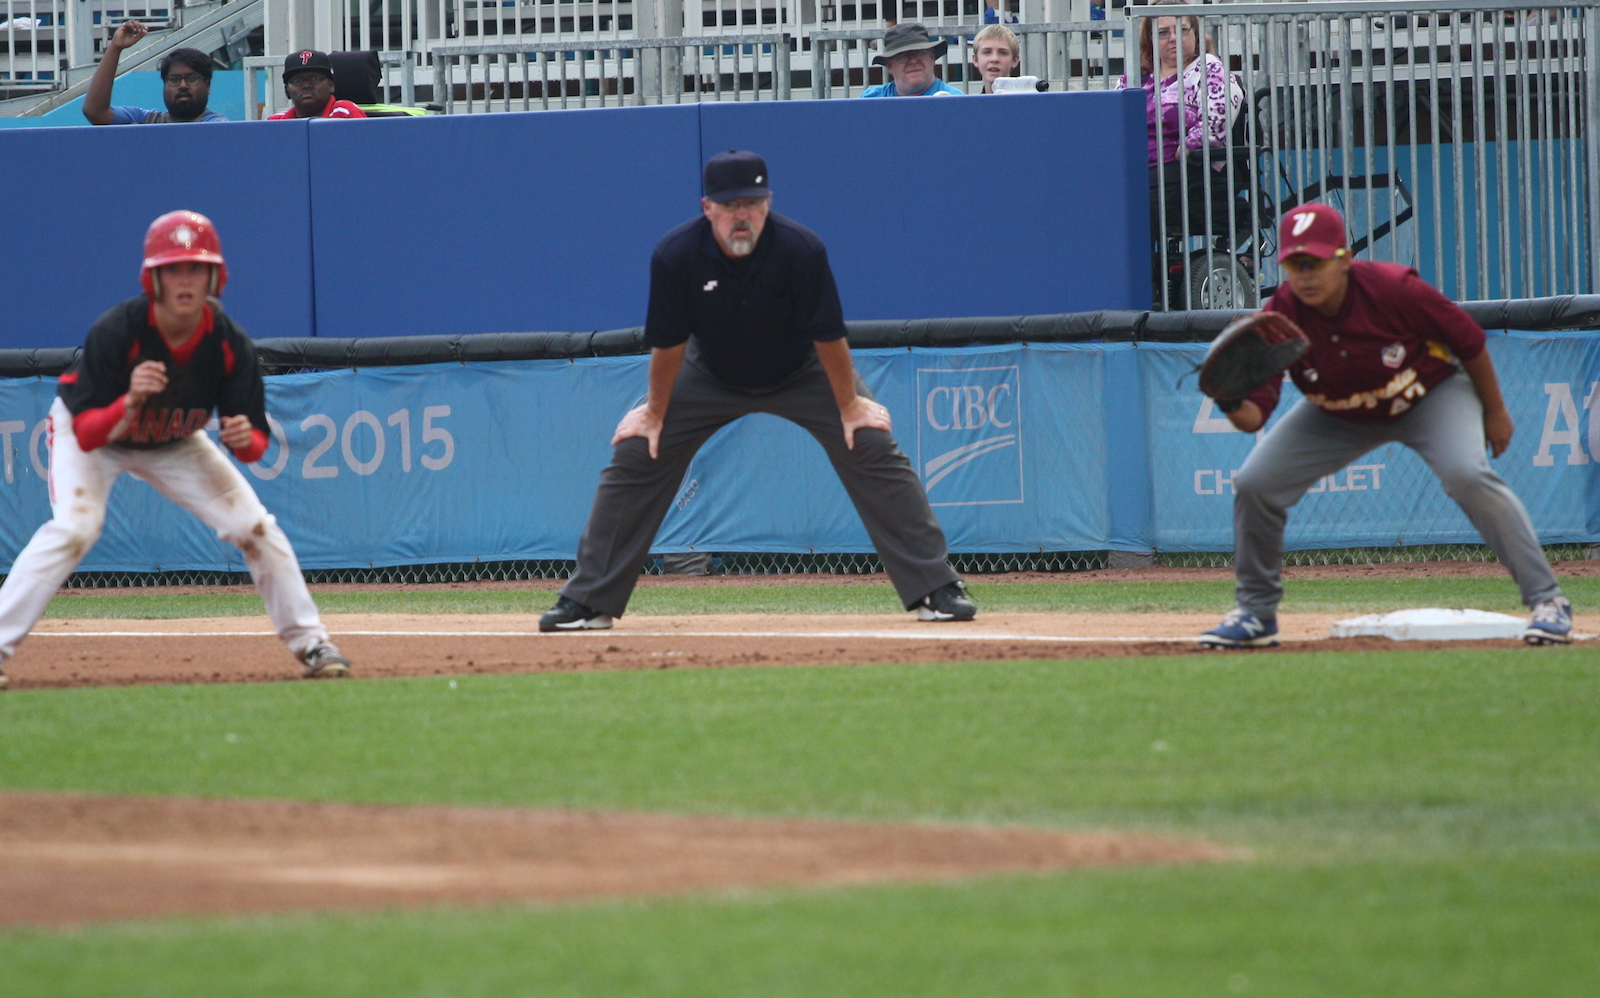 Canadian umpires making international mark